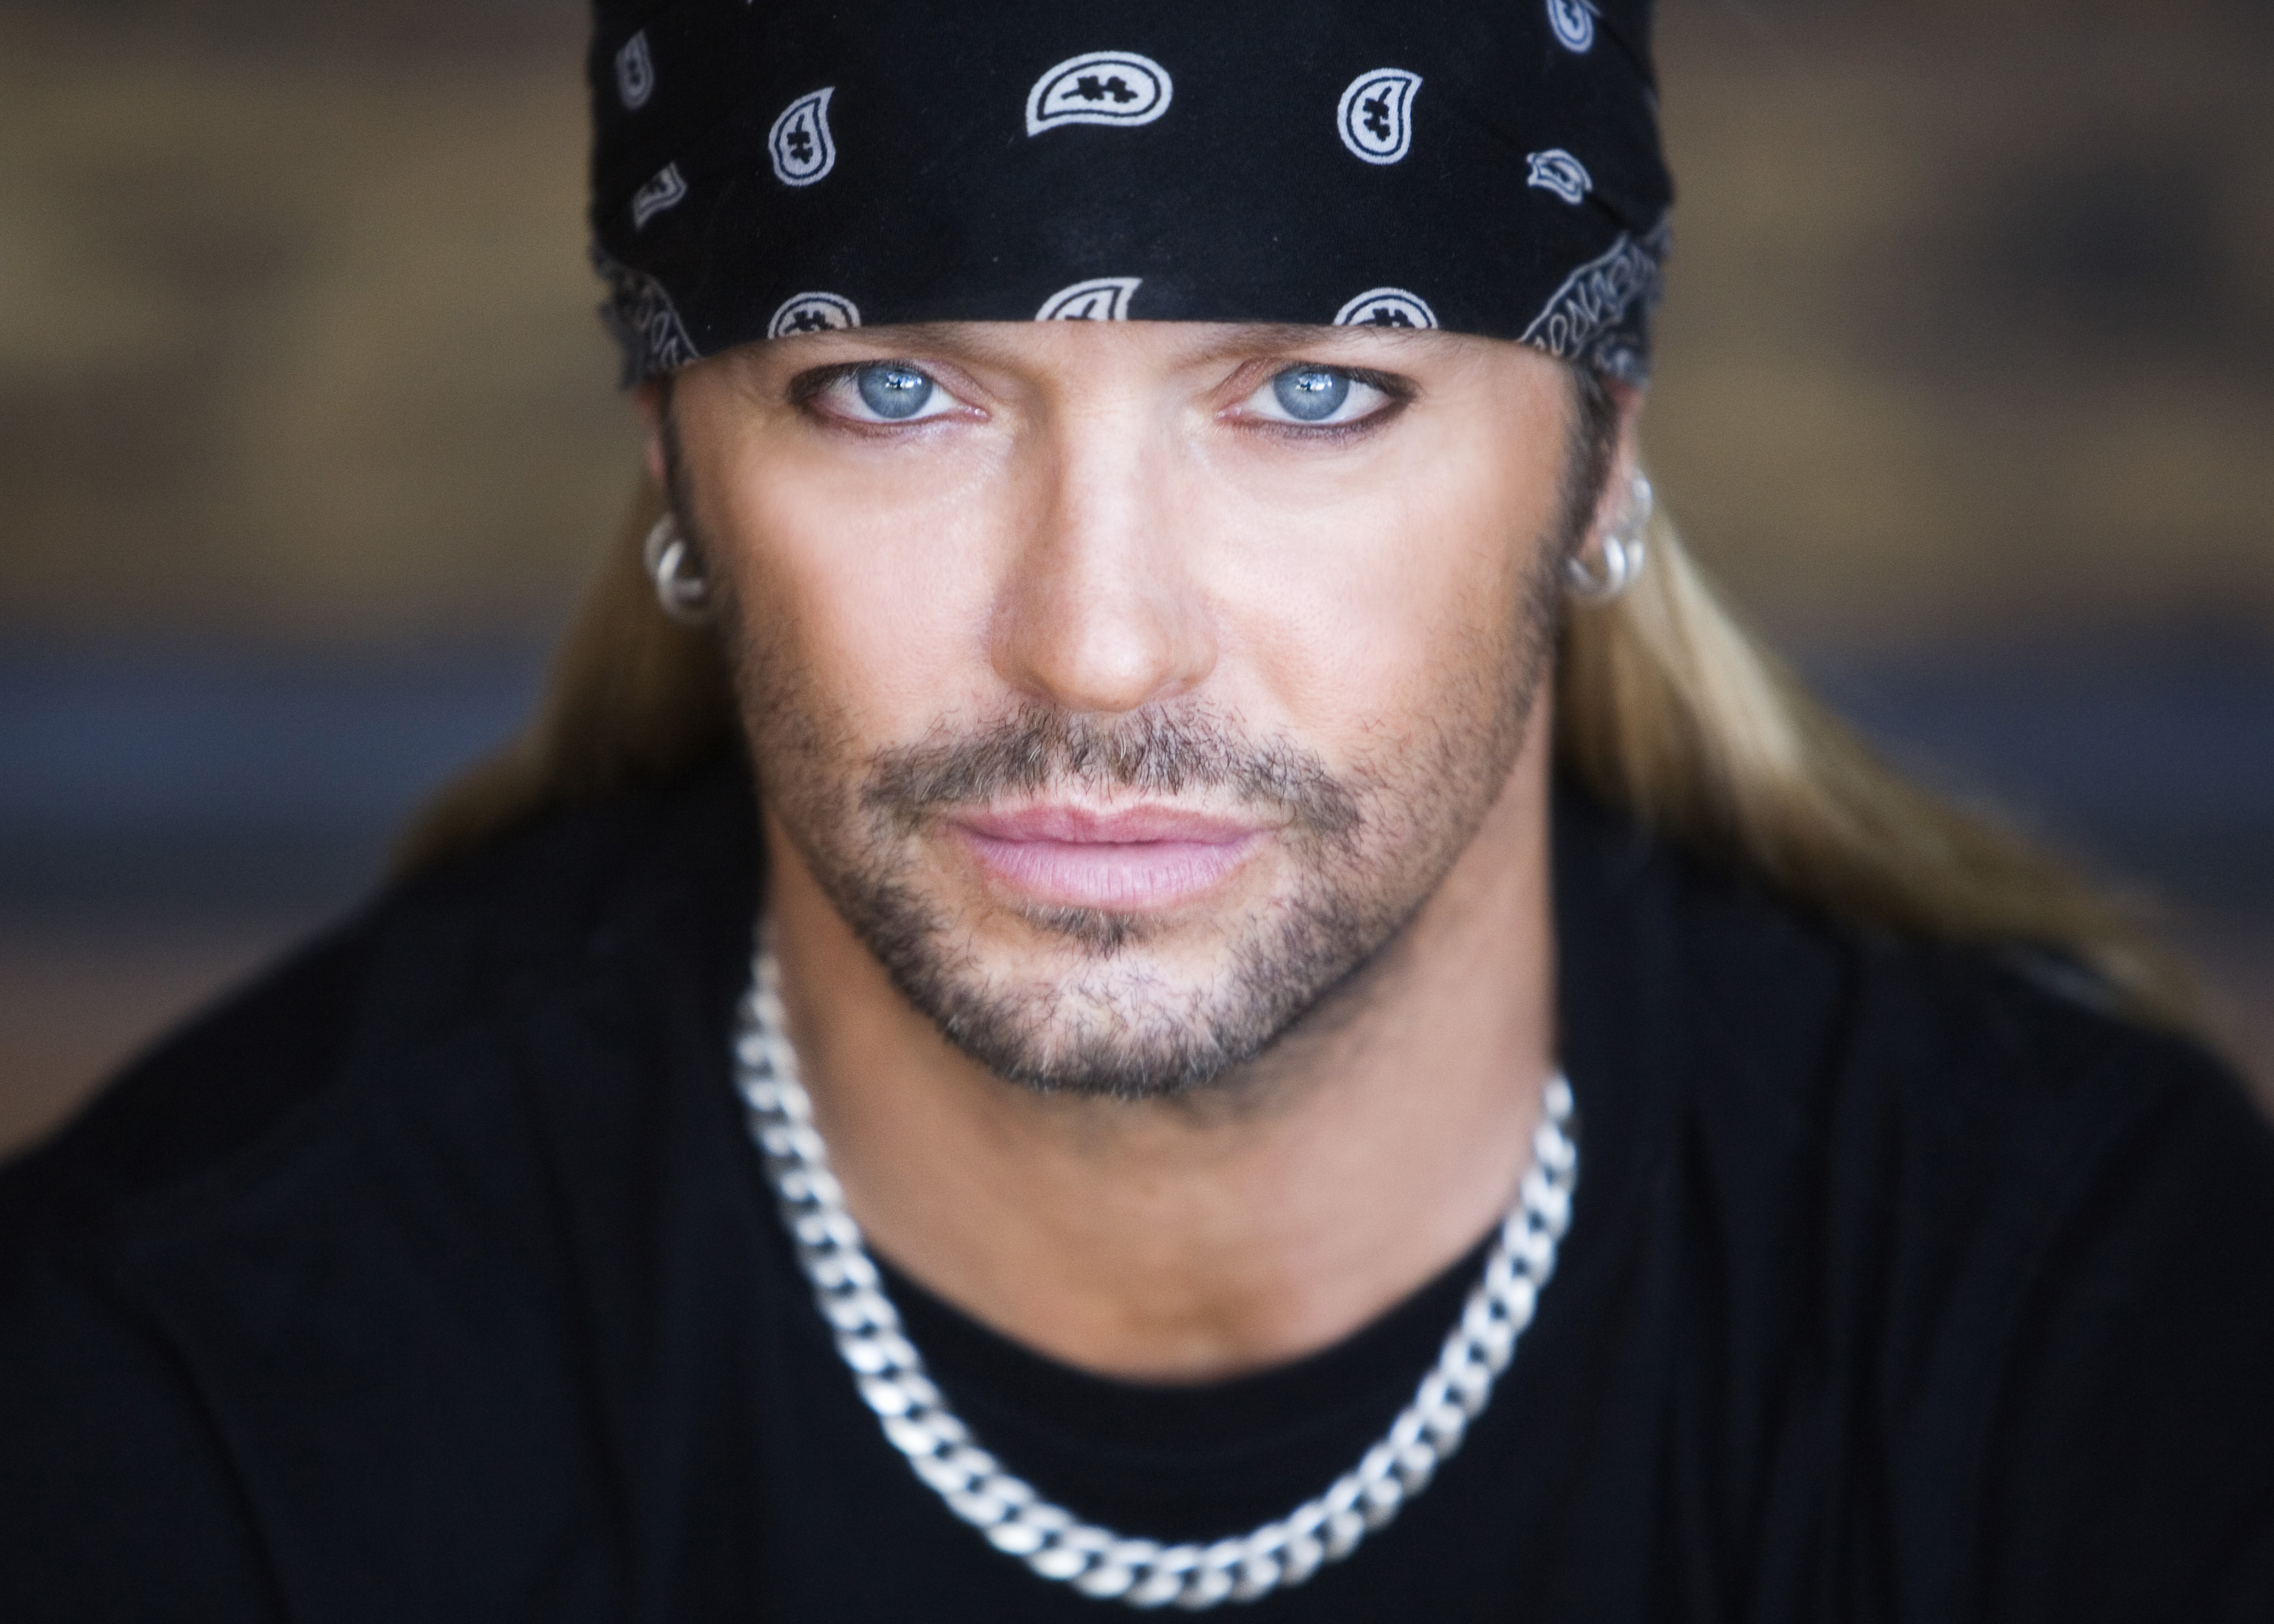 Bret Michaels Net Worth